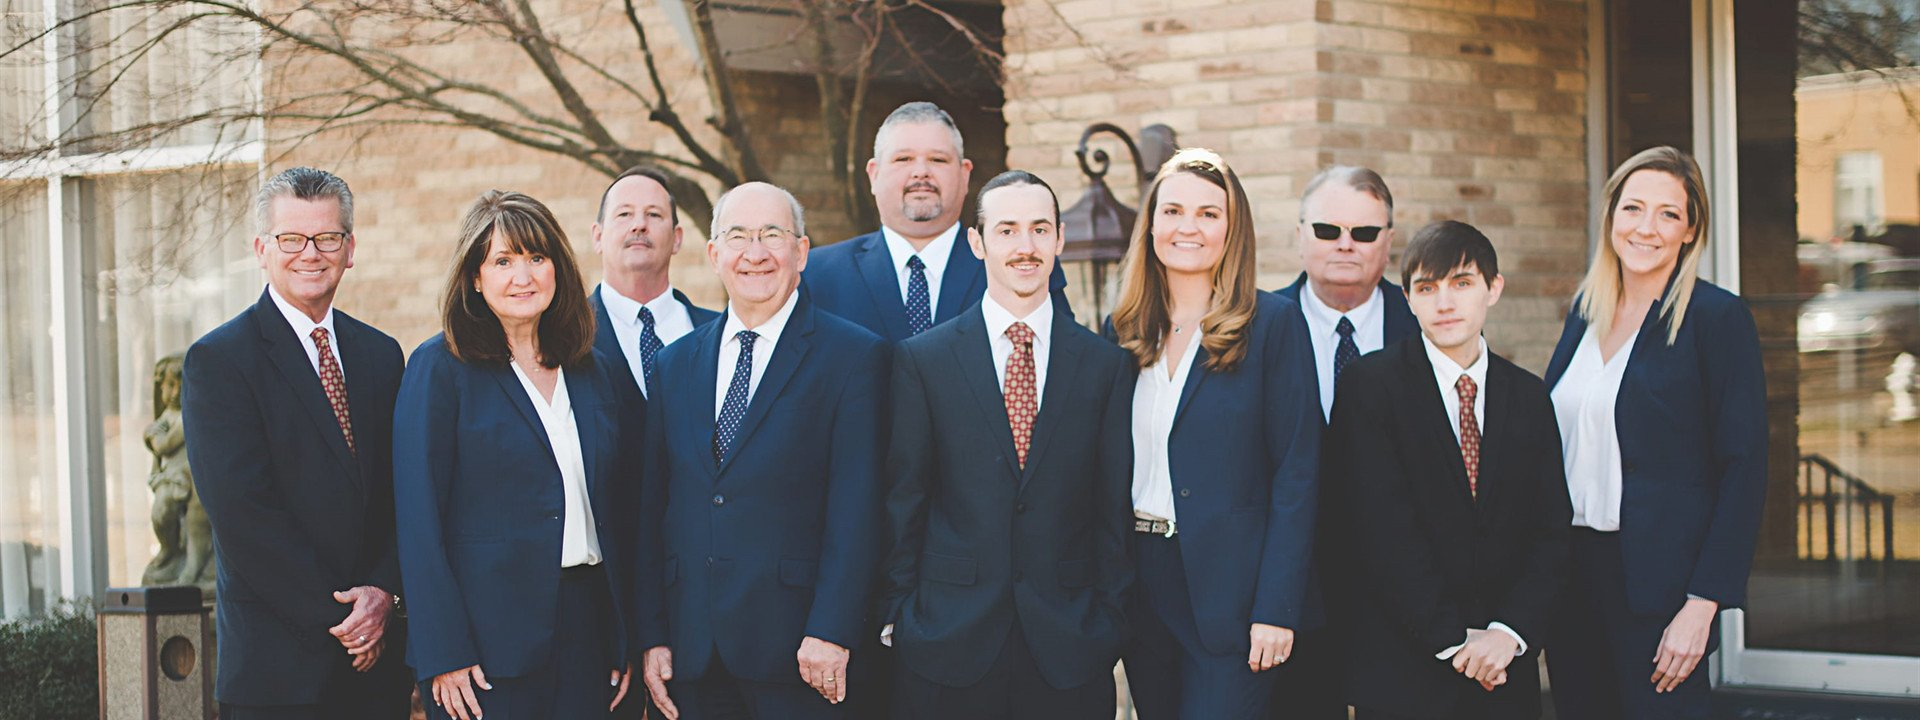 Pegues Funeral Home Funeral and Cremation Services What Sets us Apart